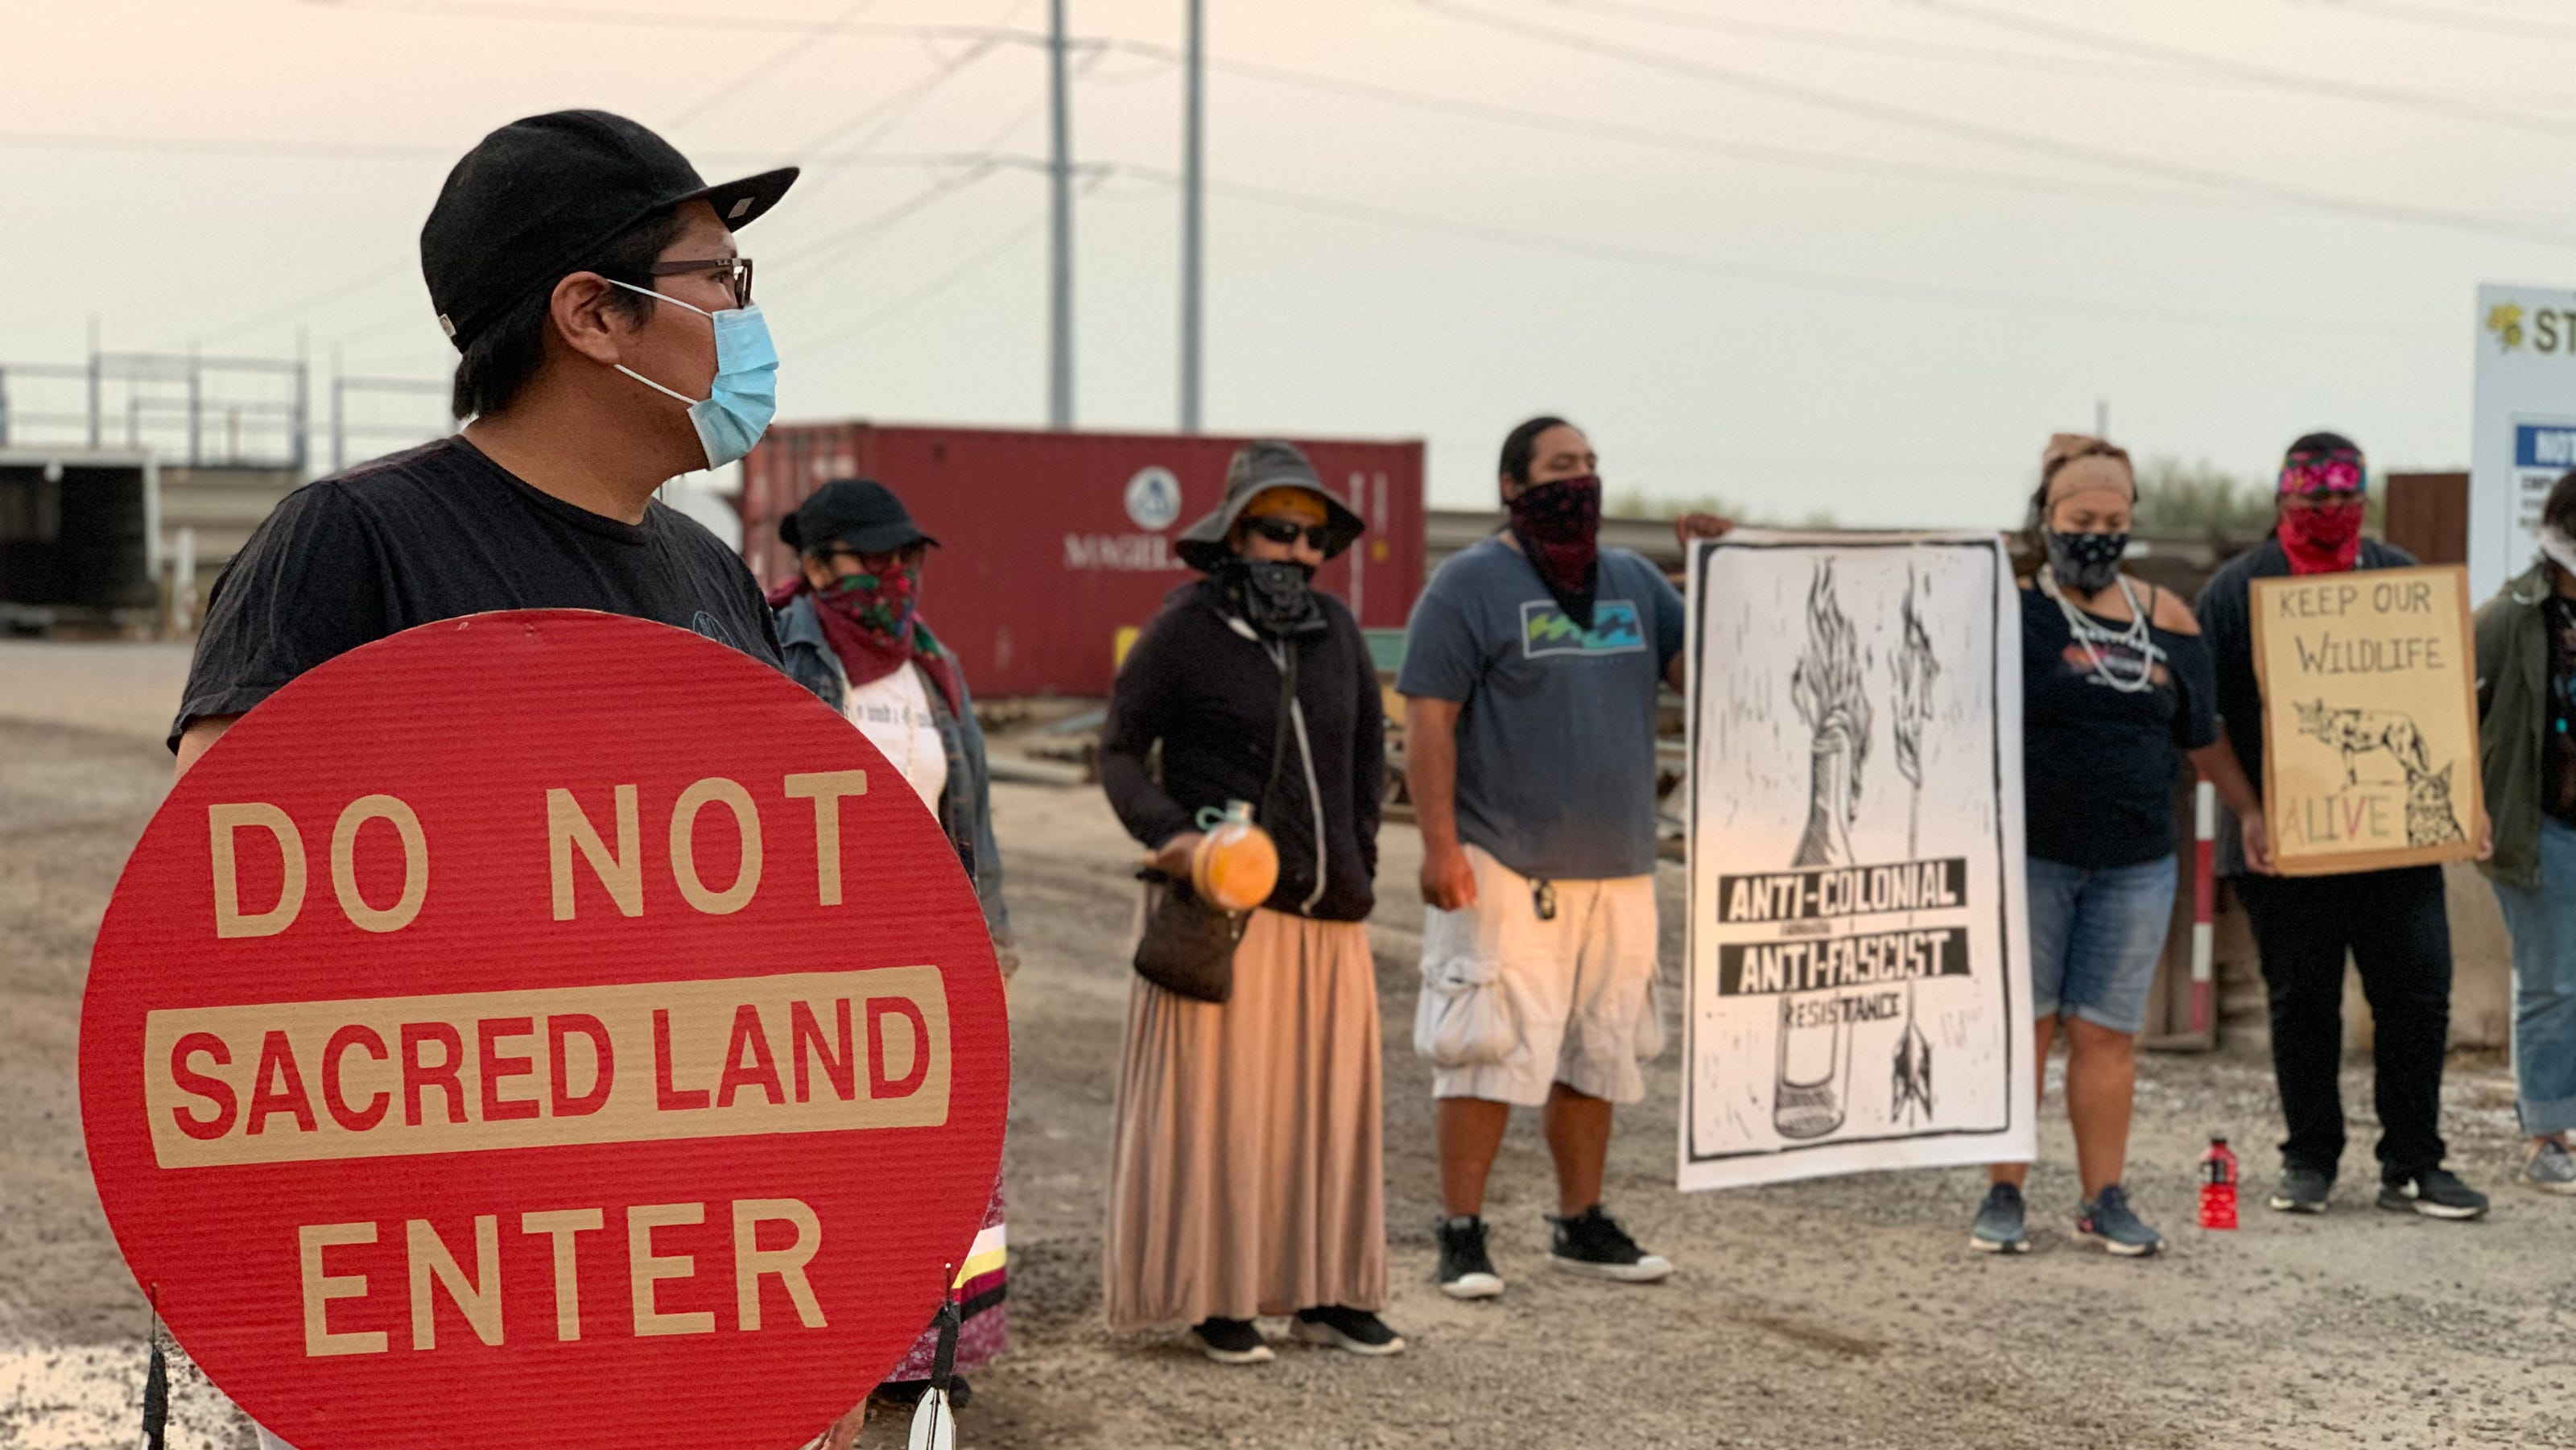 O'odham members block border wall assembly site to protest desecration of tribal lands